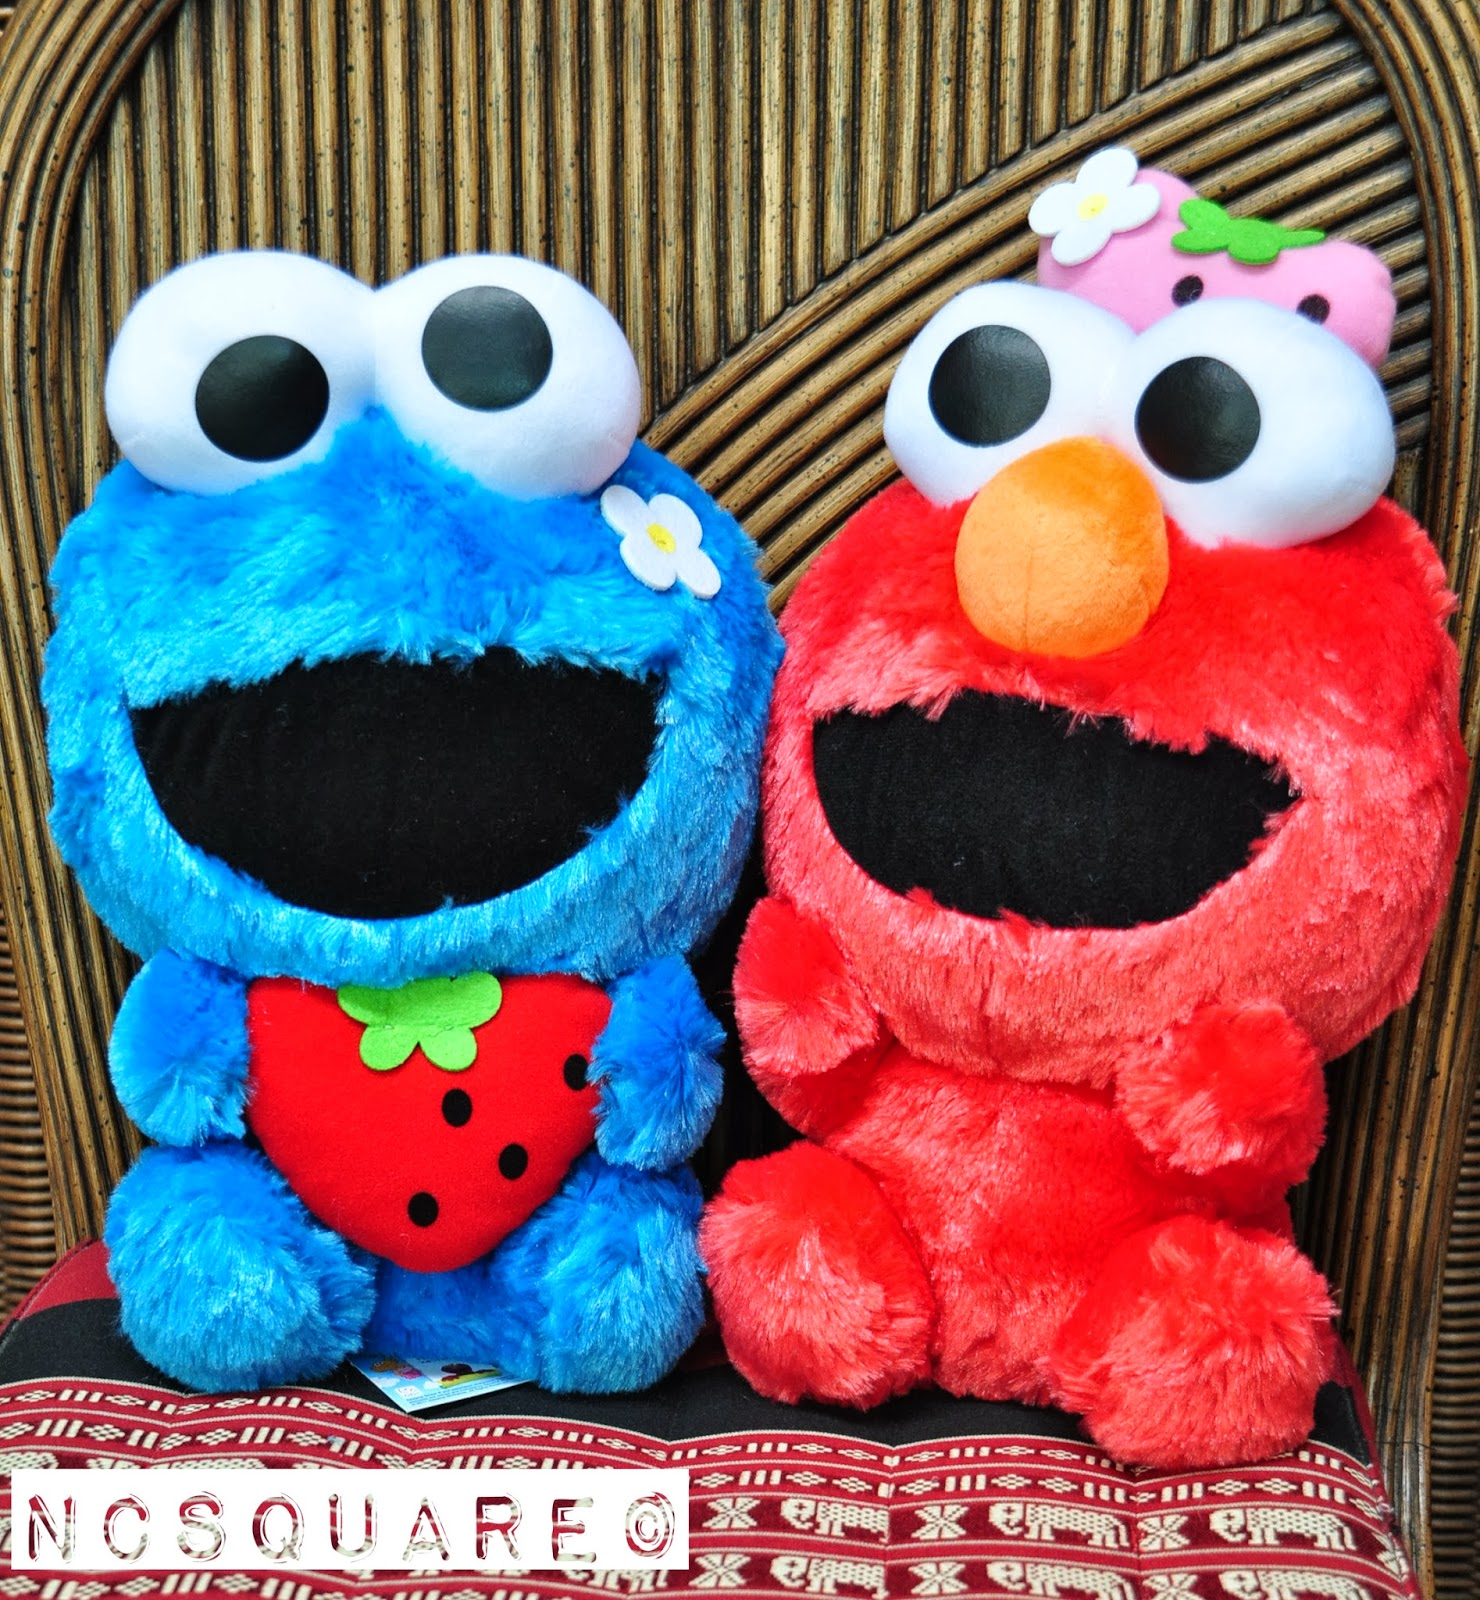 ncsquare elmo cookie monster